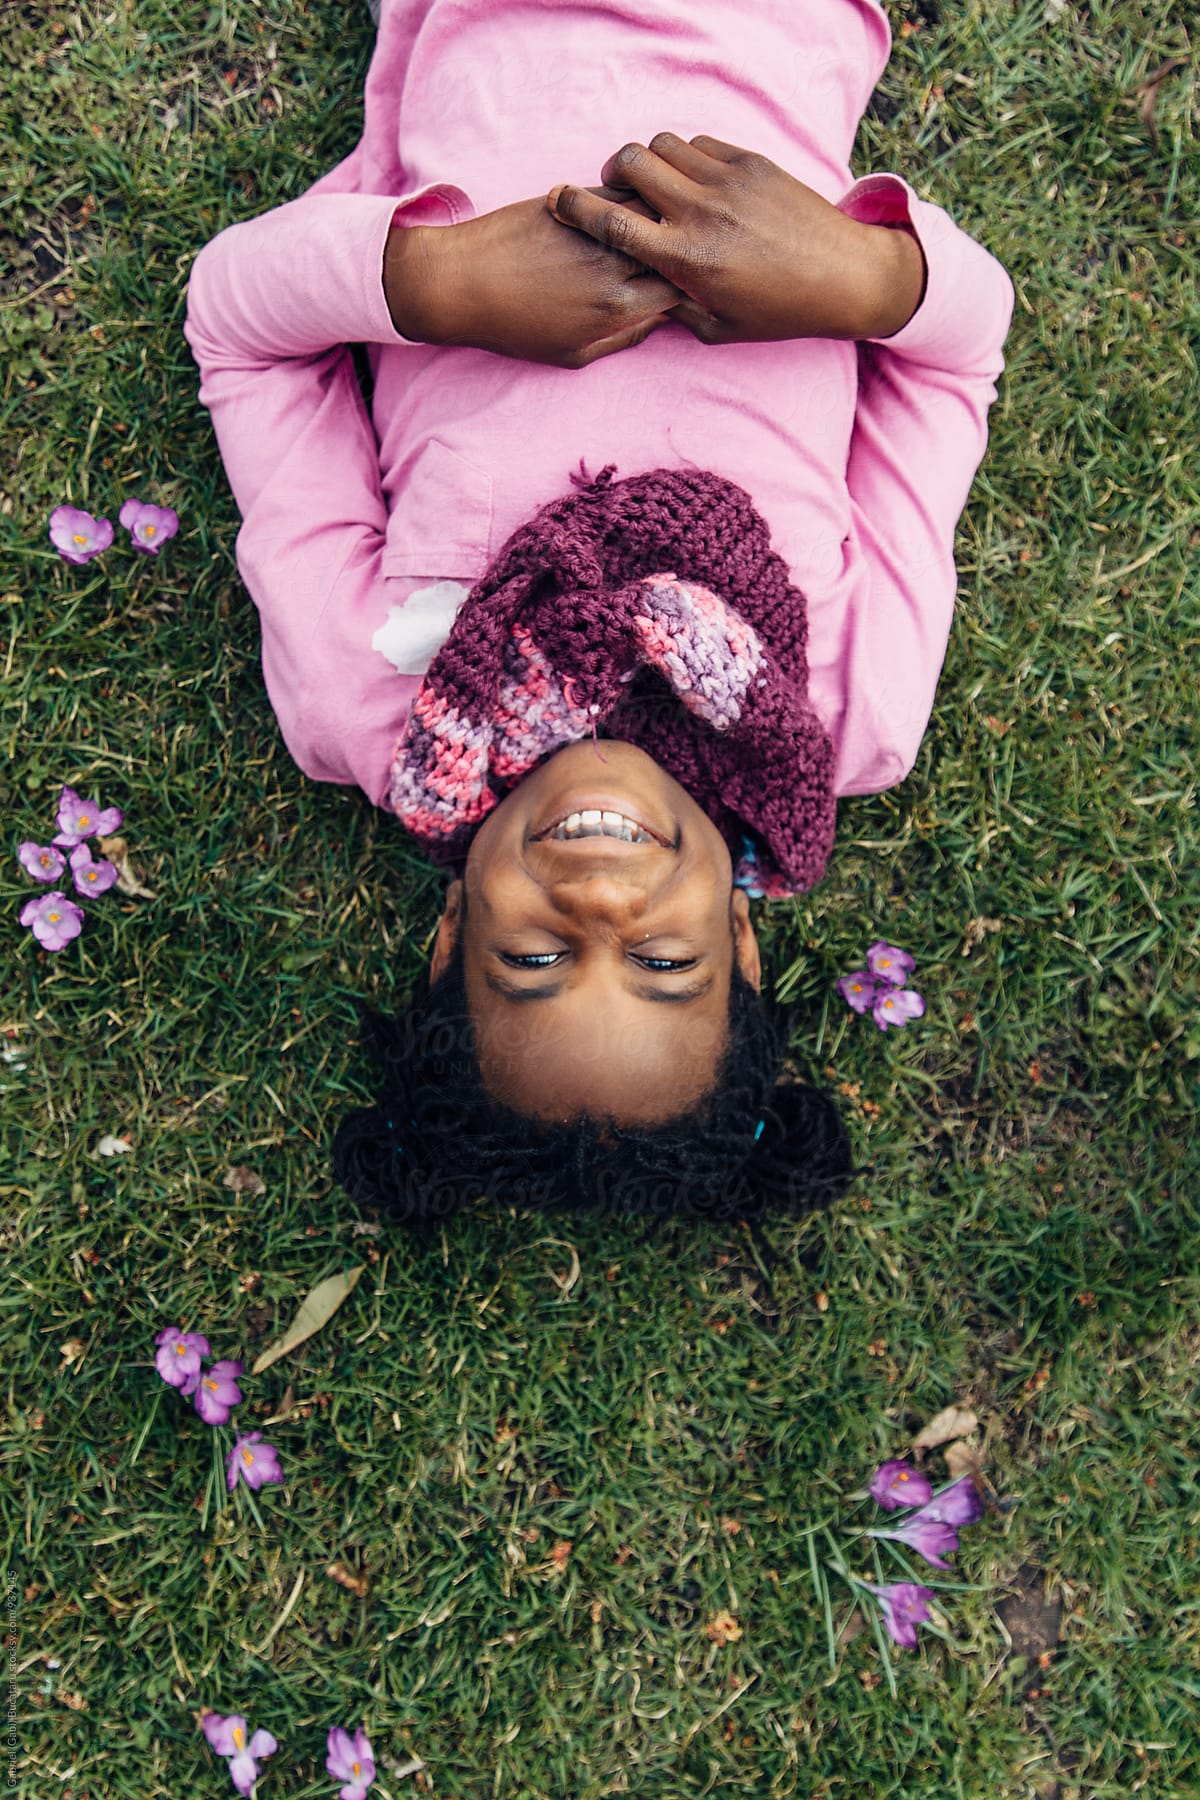 Smiling Upside Down Black Girl Laying On Grass With Crocus Flowers